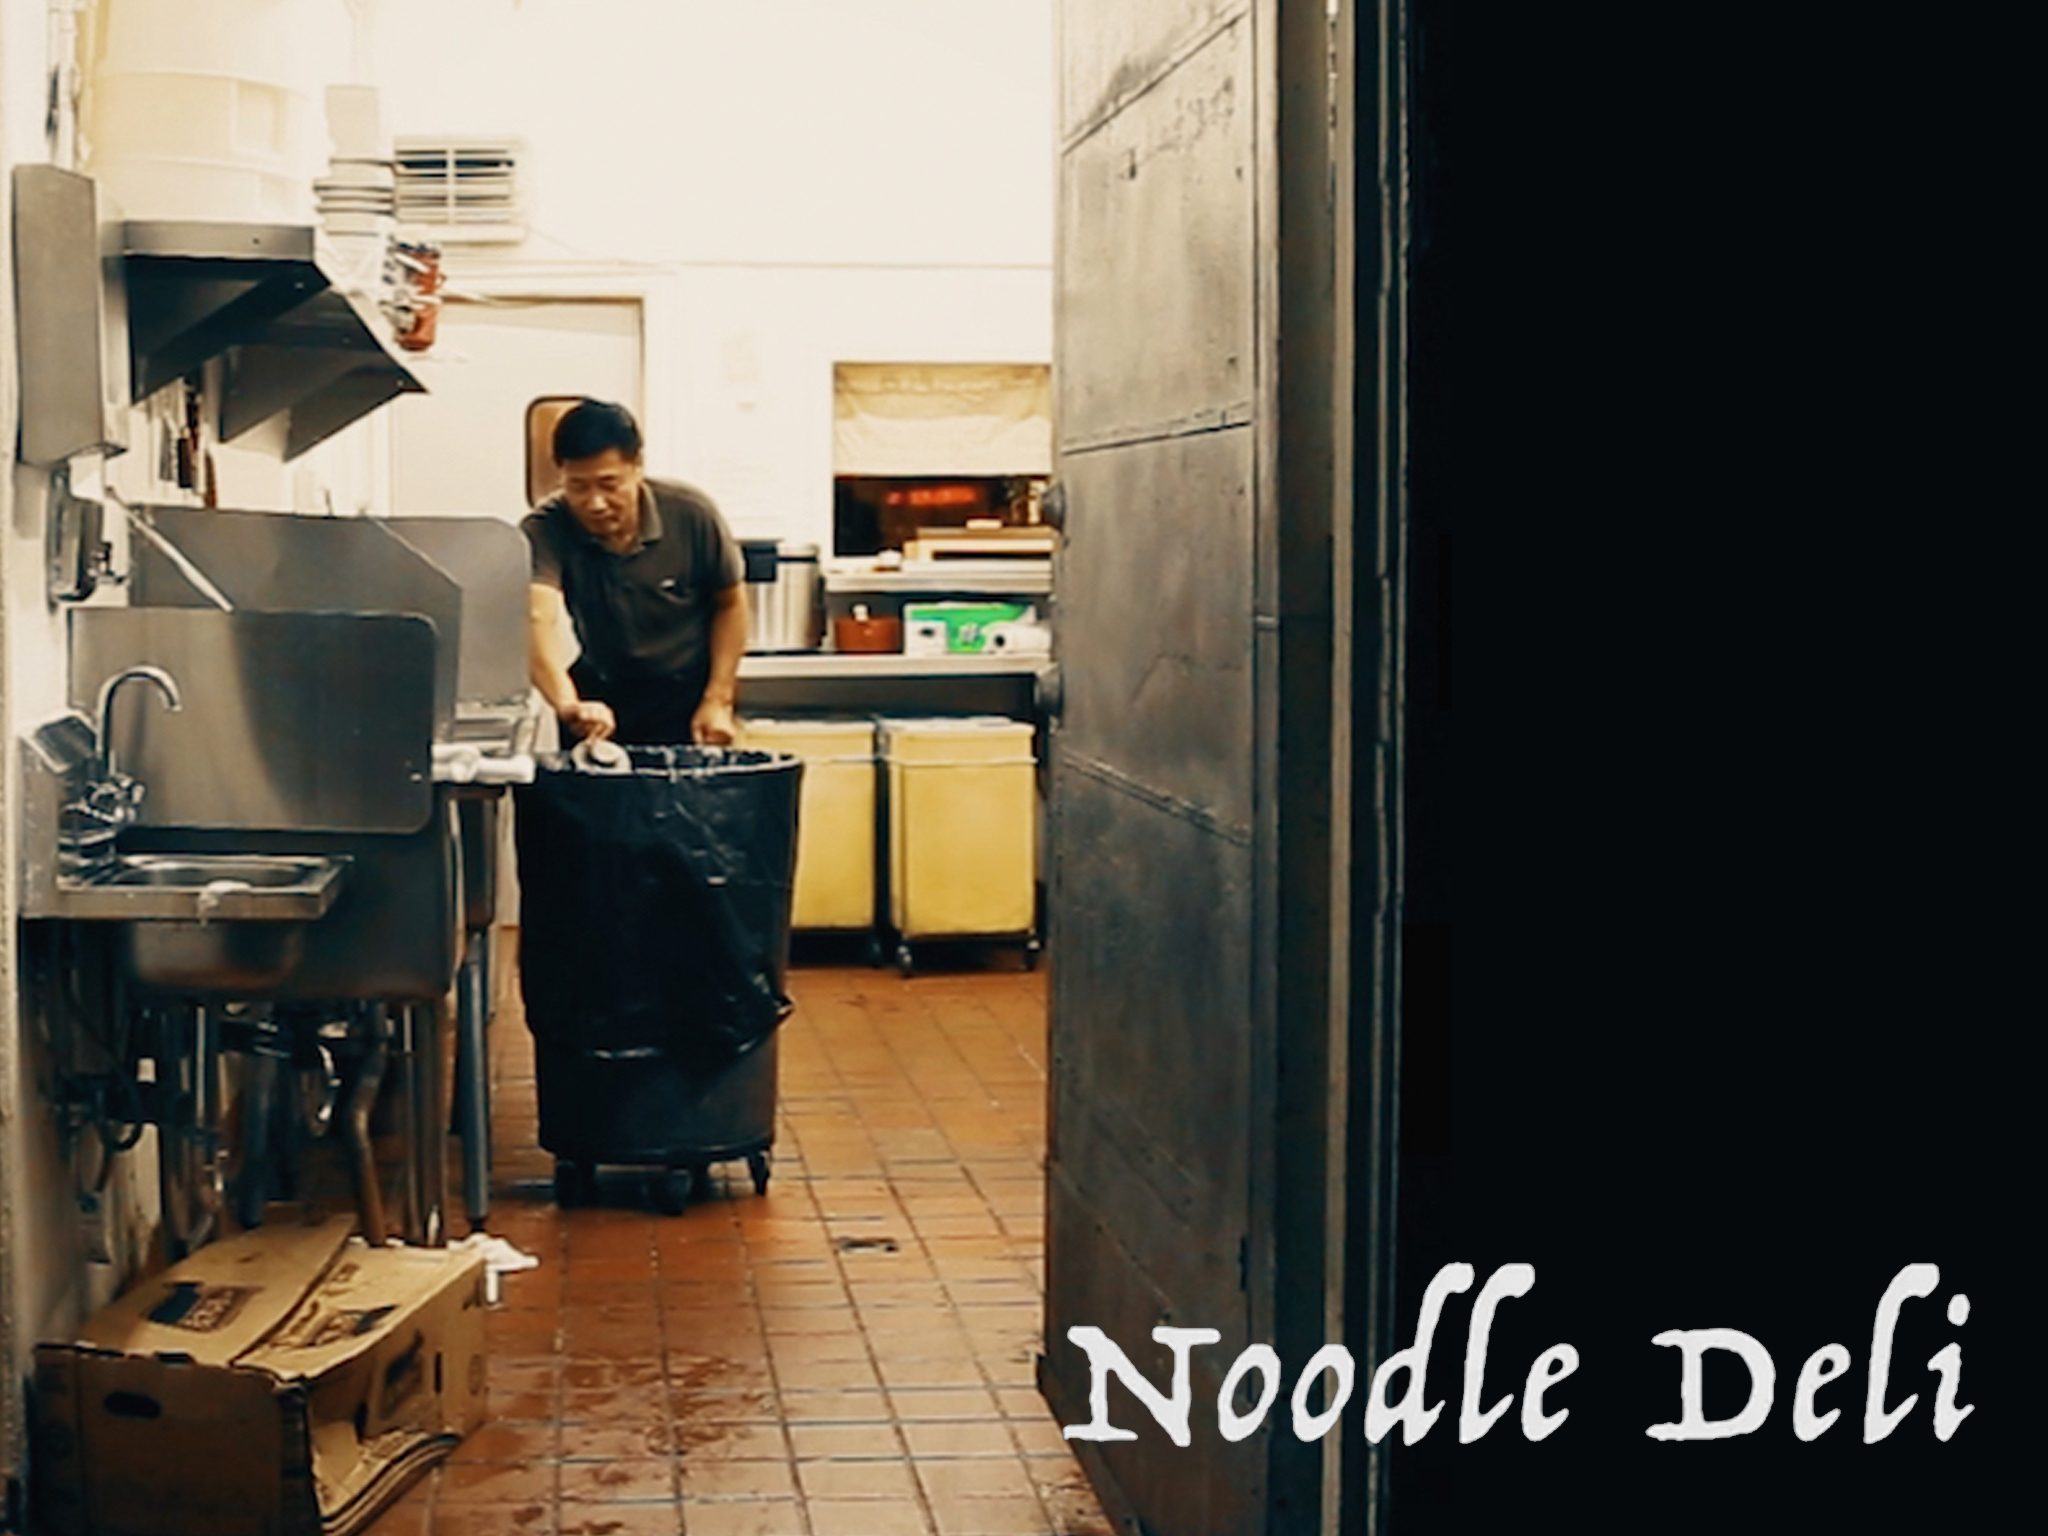 In a small restaurant of Temple City, CA, a man's long and arduous journey in America leads him to fulfill his dreams, as humble and satisfying as a bowl of lovingly made noodles. Directed by David Liu.